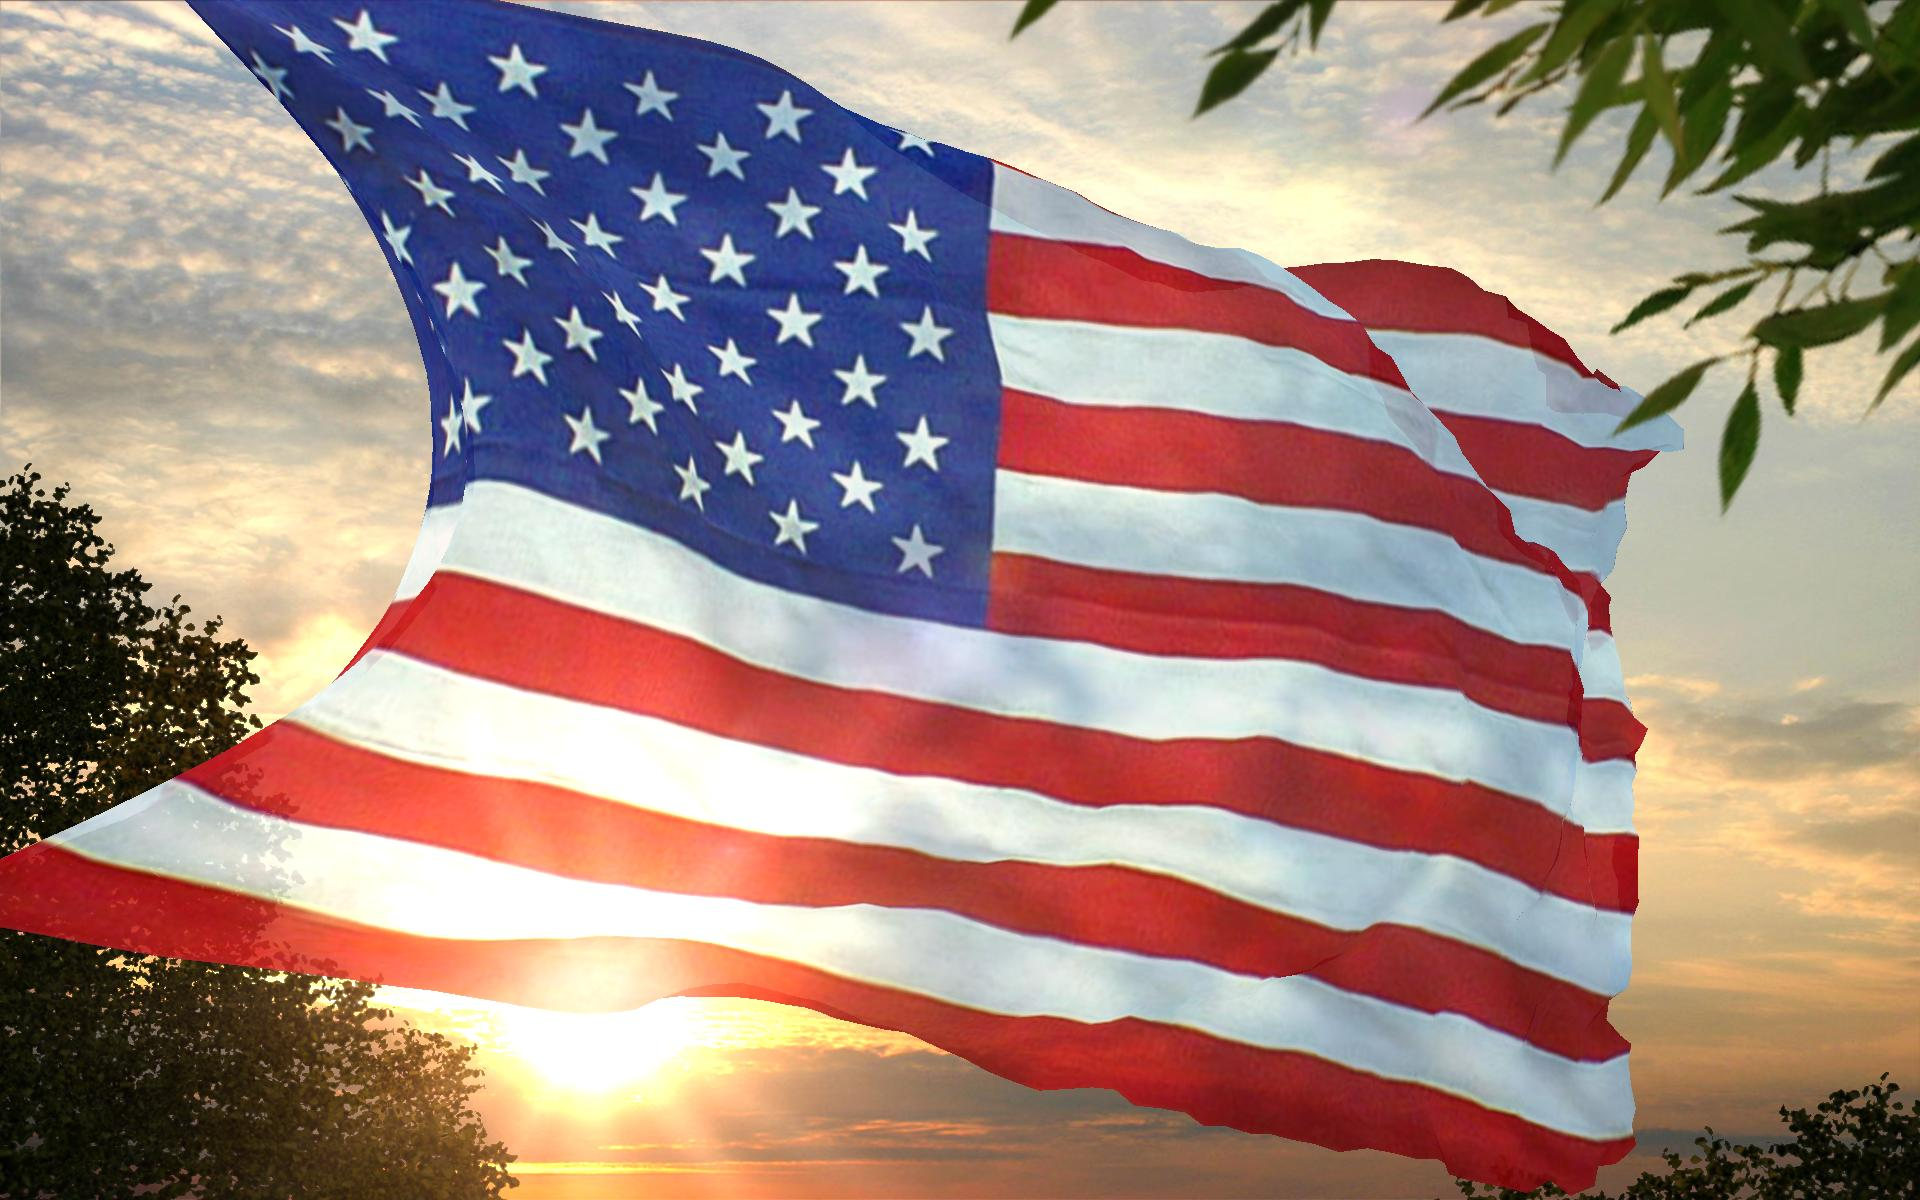 USA American Flag Wallpaper 13065 Wallpaper Cool Walldiskpapercom 1920x1200